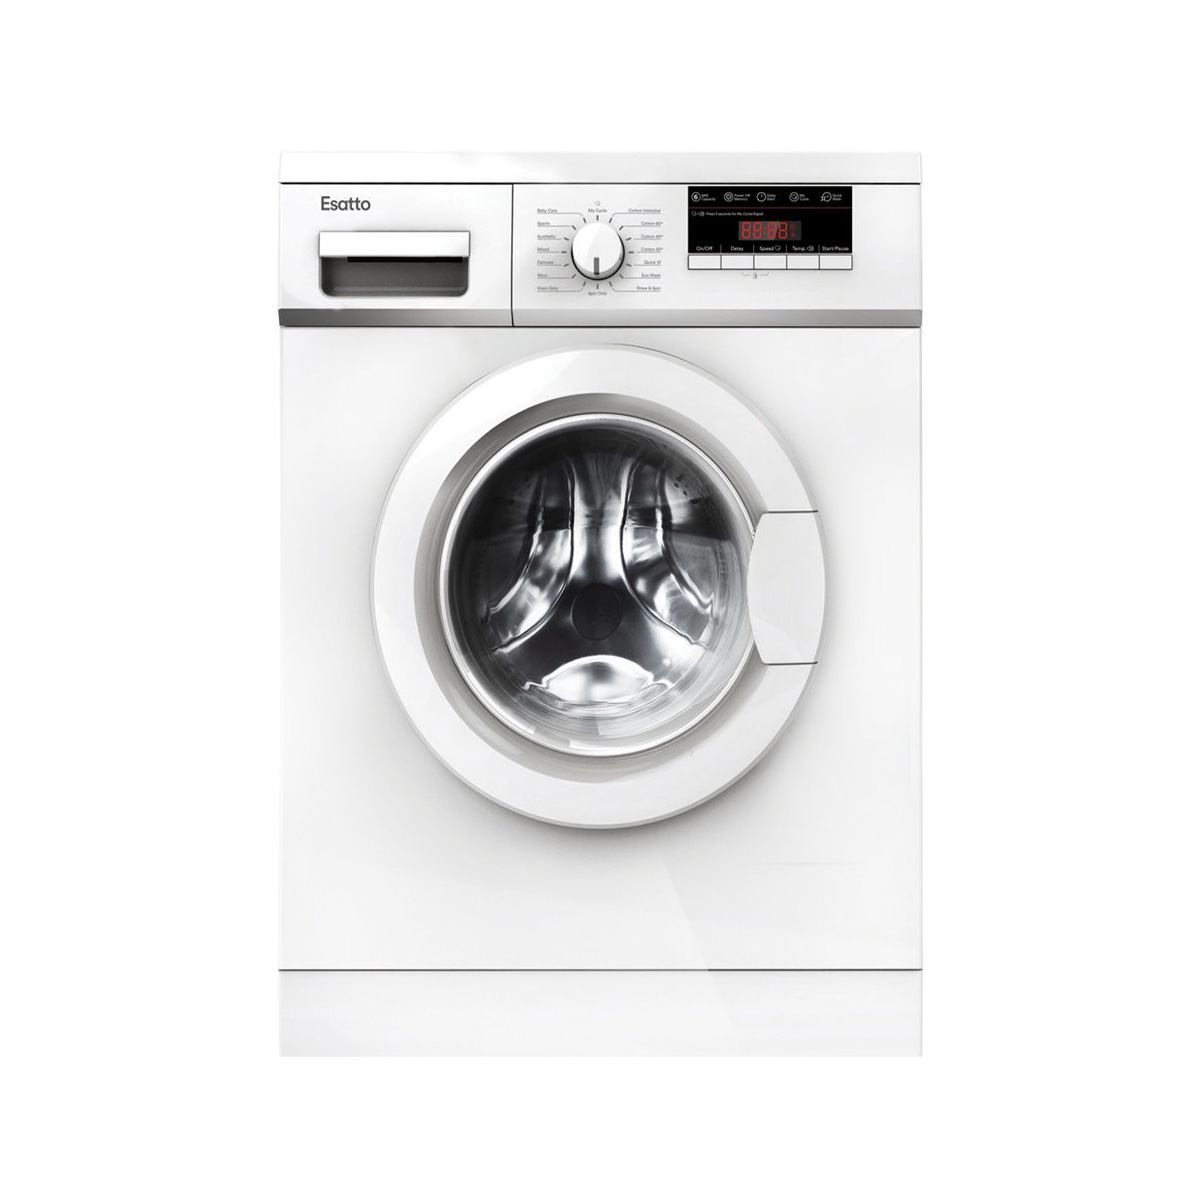 Esatto EFLW6 6 kg Front Load Washing Machine